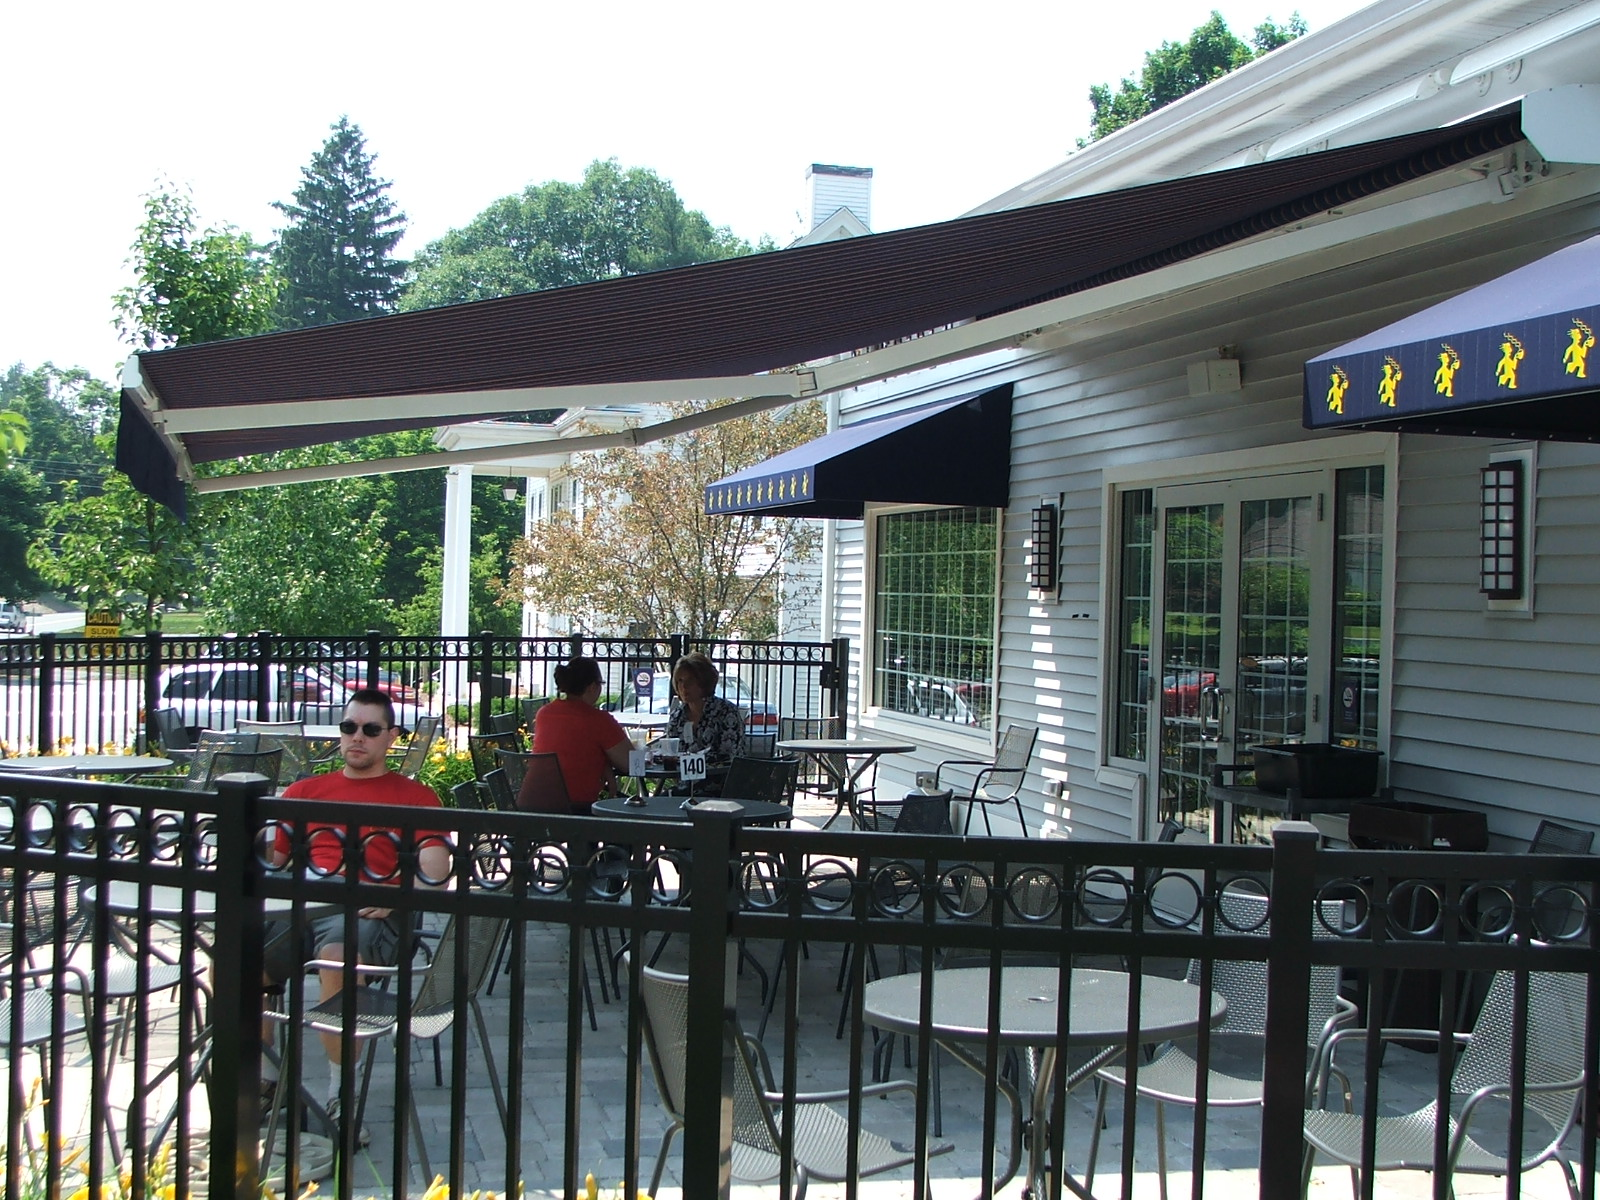 Retractable Awning Review